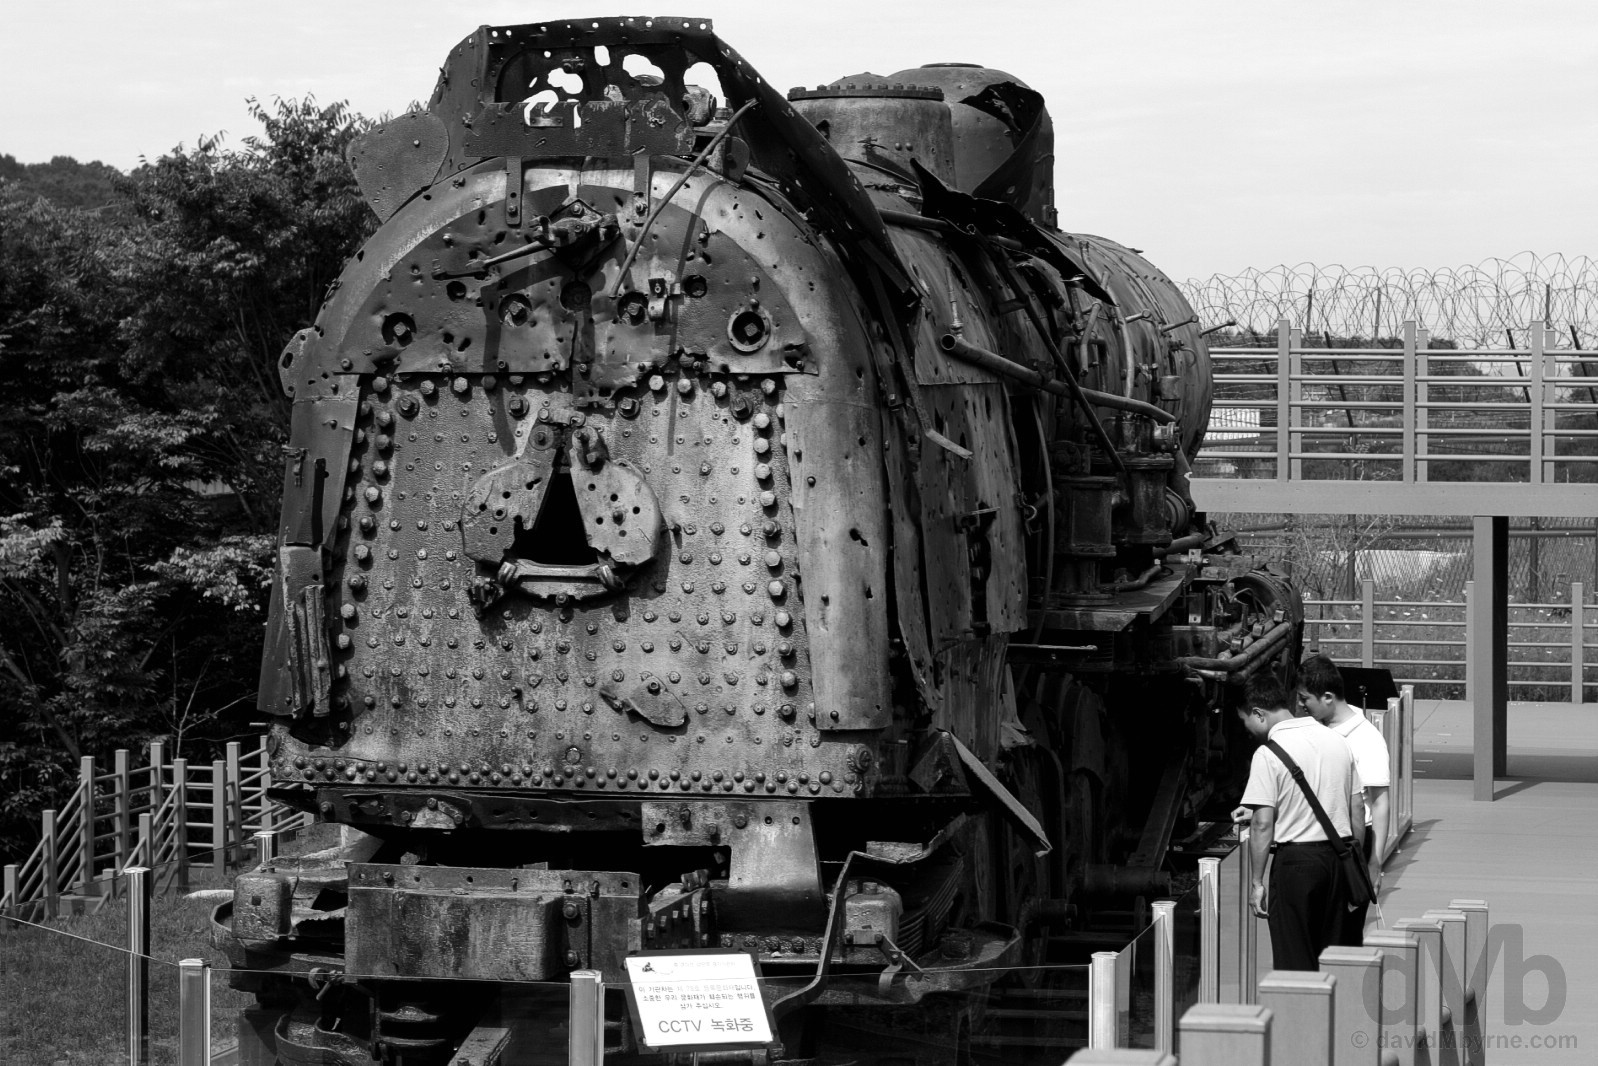 The discarded steam locomotive, a rusting remnant of the 1950-1953 Korean War, by the Bridge of Freedom of the Demilitarized Zone (DMZ) at Imjingak, South Korea. August 21, 2009.